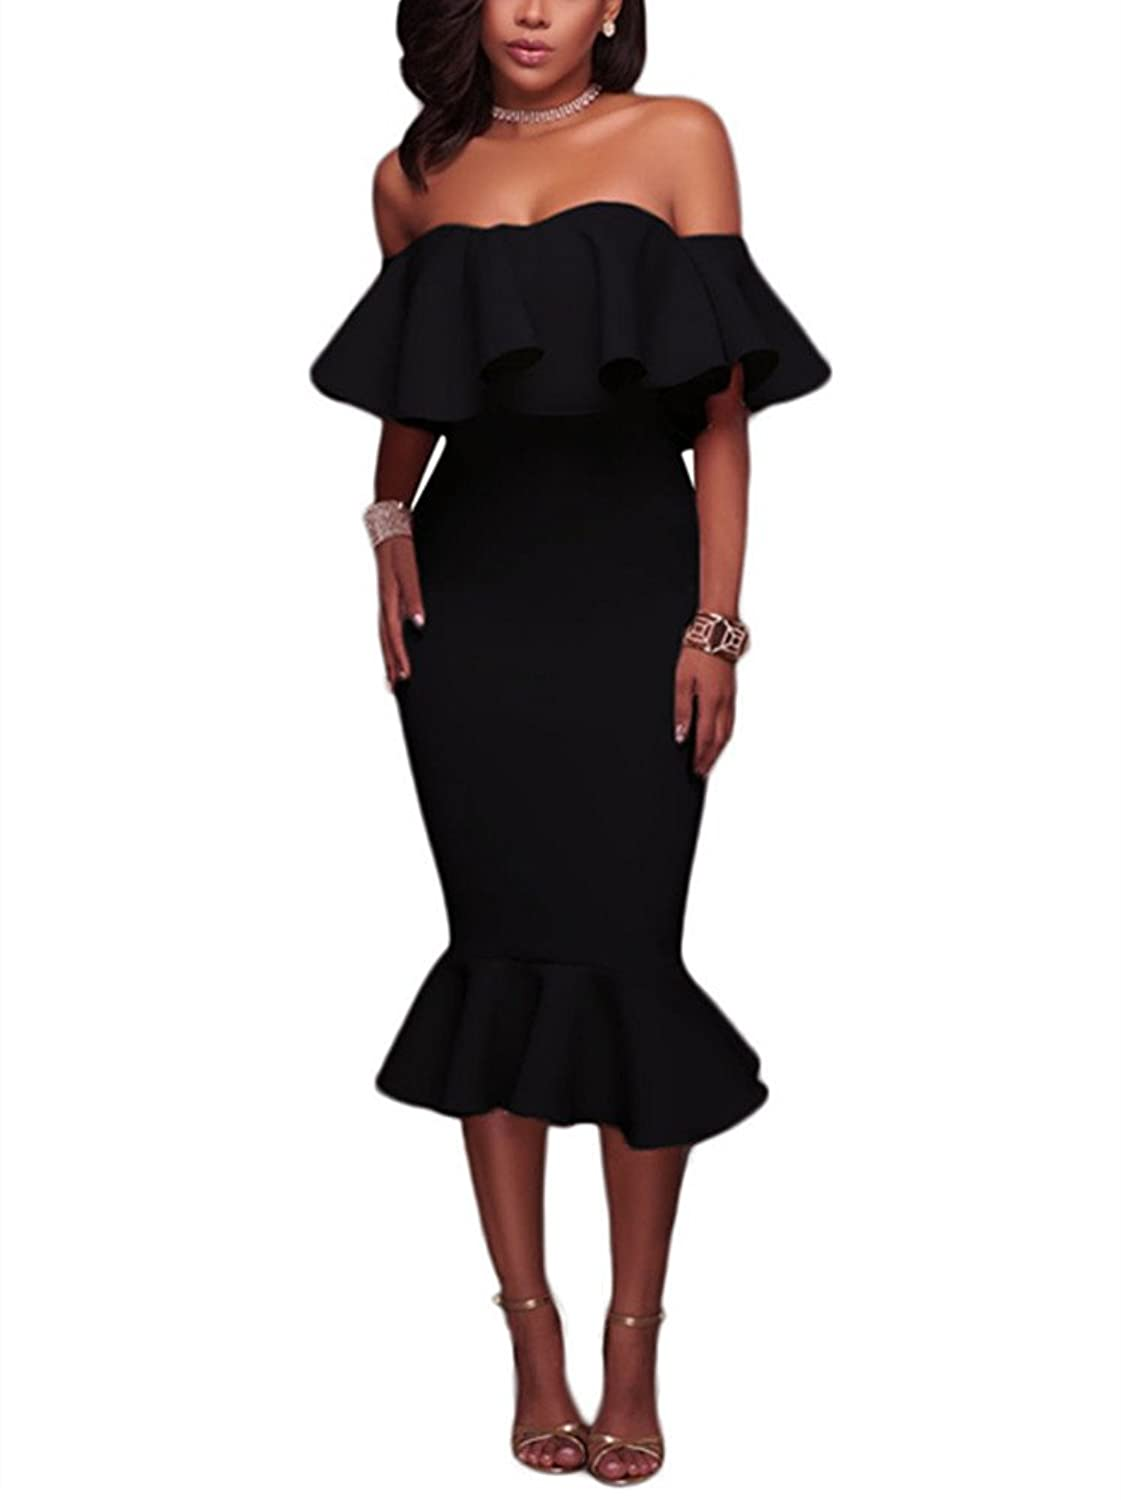 dd9dcde1be7 High-stretch fabric perfect the curve-hugging fit. Finished with mermaid  hemline cut at midi length. Strapless off shoulder ...